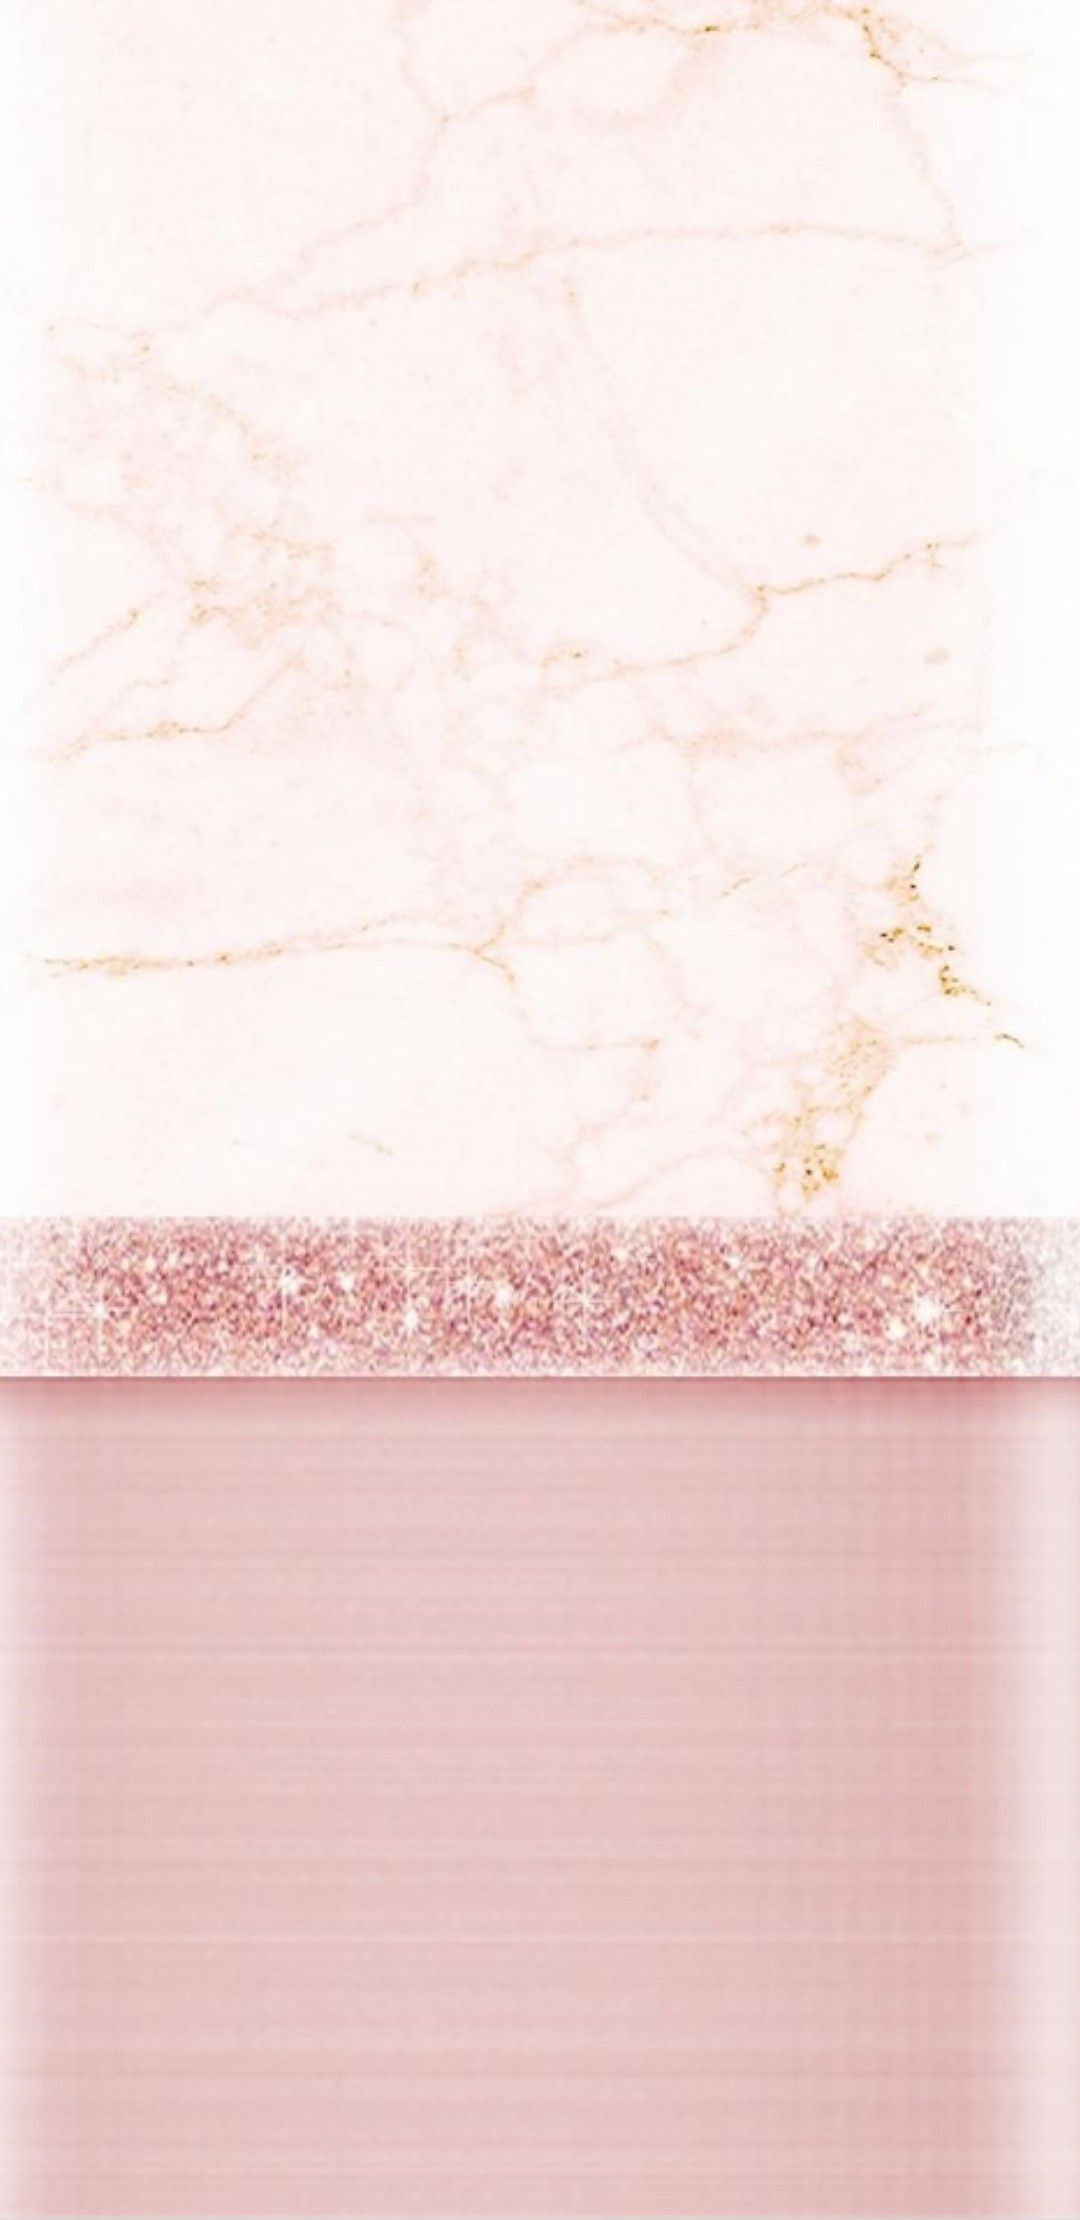 Pin by sara torres on fabulous backgrounds in 2019 pink - Rose gold glitter iphone wallpaper ...